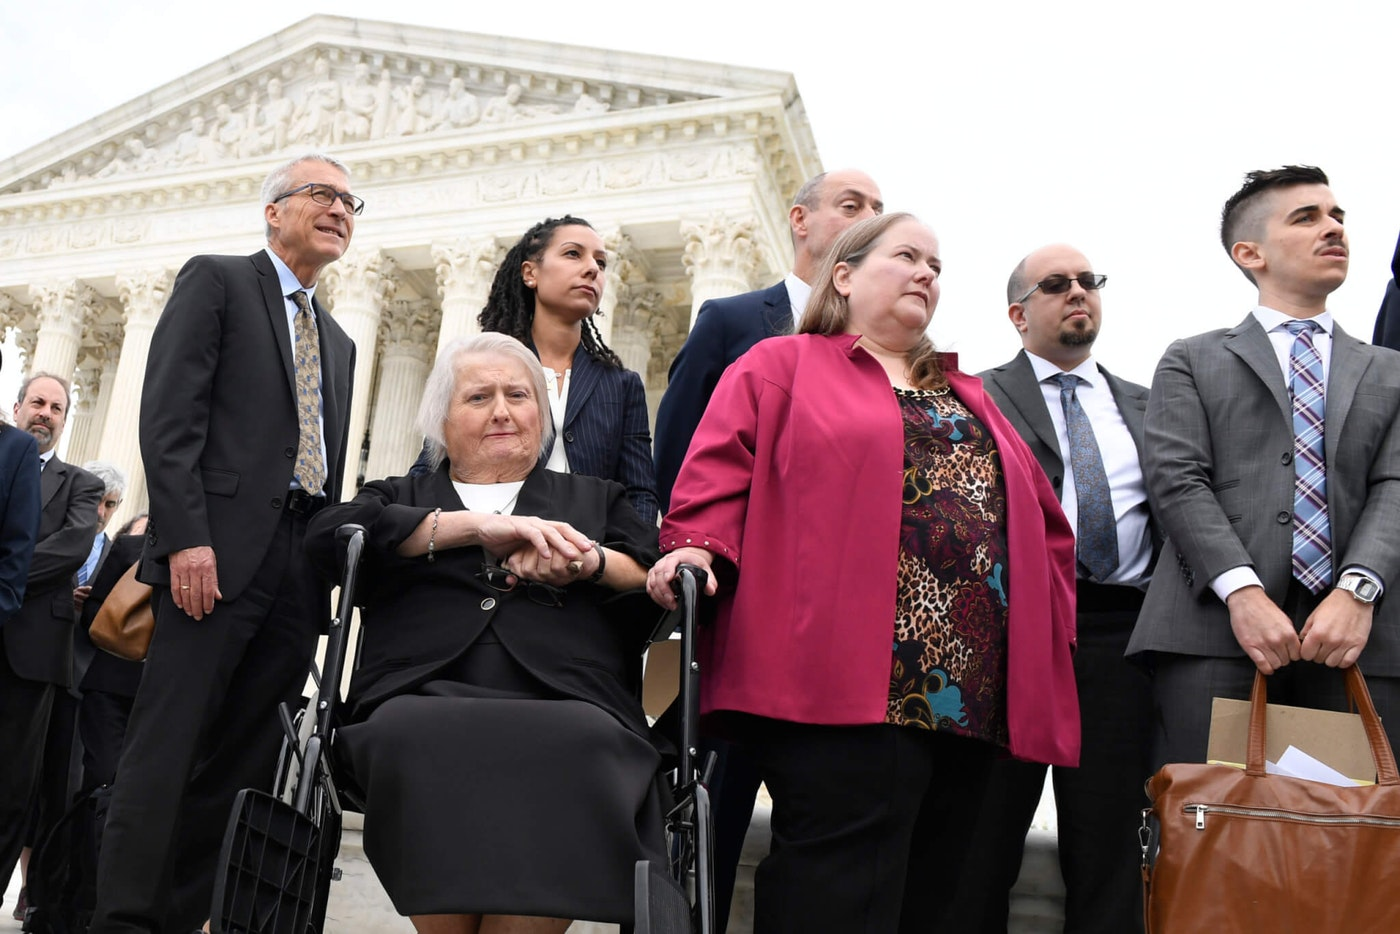 Aimee Stephens, seated, and her wife Donna Stephens, in pink, listen during a news conference outside the Supreme Court in Washington, Tuesday, Oct. 8, 2019. Aimee Stephens lost her job when she told Thomas Rost, owner of the Detroit-area R.G. and G.R. Harris Funeral Homes, that she had struggled with gender identity issues almost her whole life. Chase Strangio, listening at right, is an attorney with the American Civil Liberties Union who will be argues in the Harris Funeral Homes case on behalf of Aimee Stephens. (AP Photo/Susan Walsh)